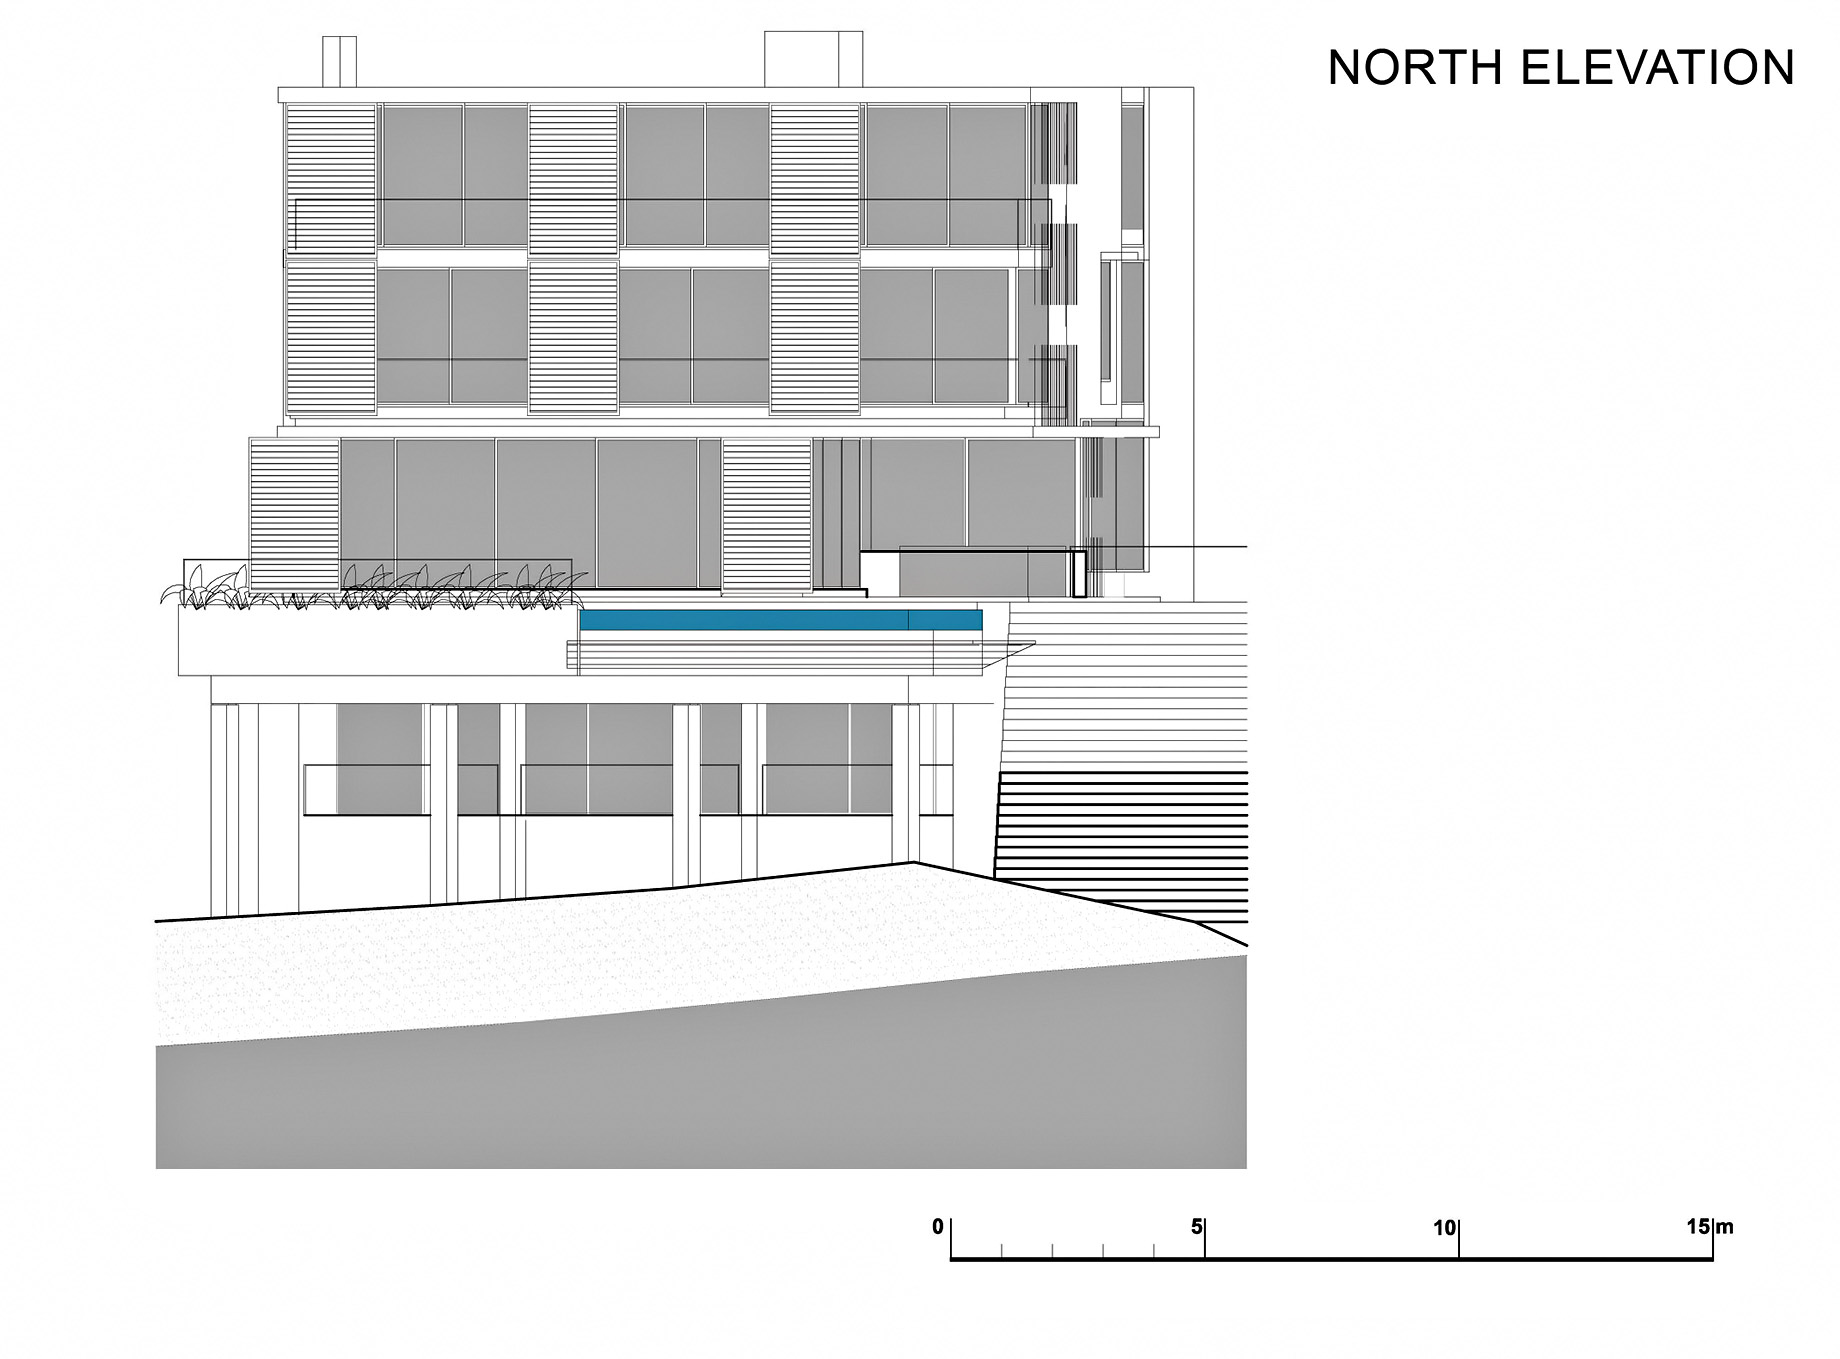 North Elevation - Level 3 - Head Road 1816 - Fresnaye, Cape Town, Western Cape, South Africa